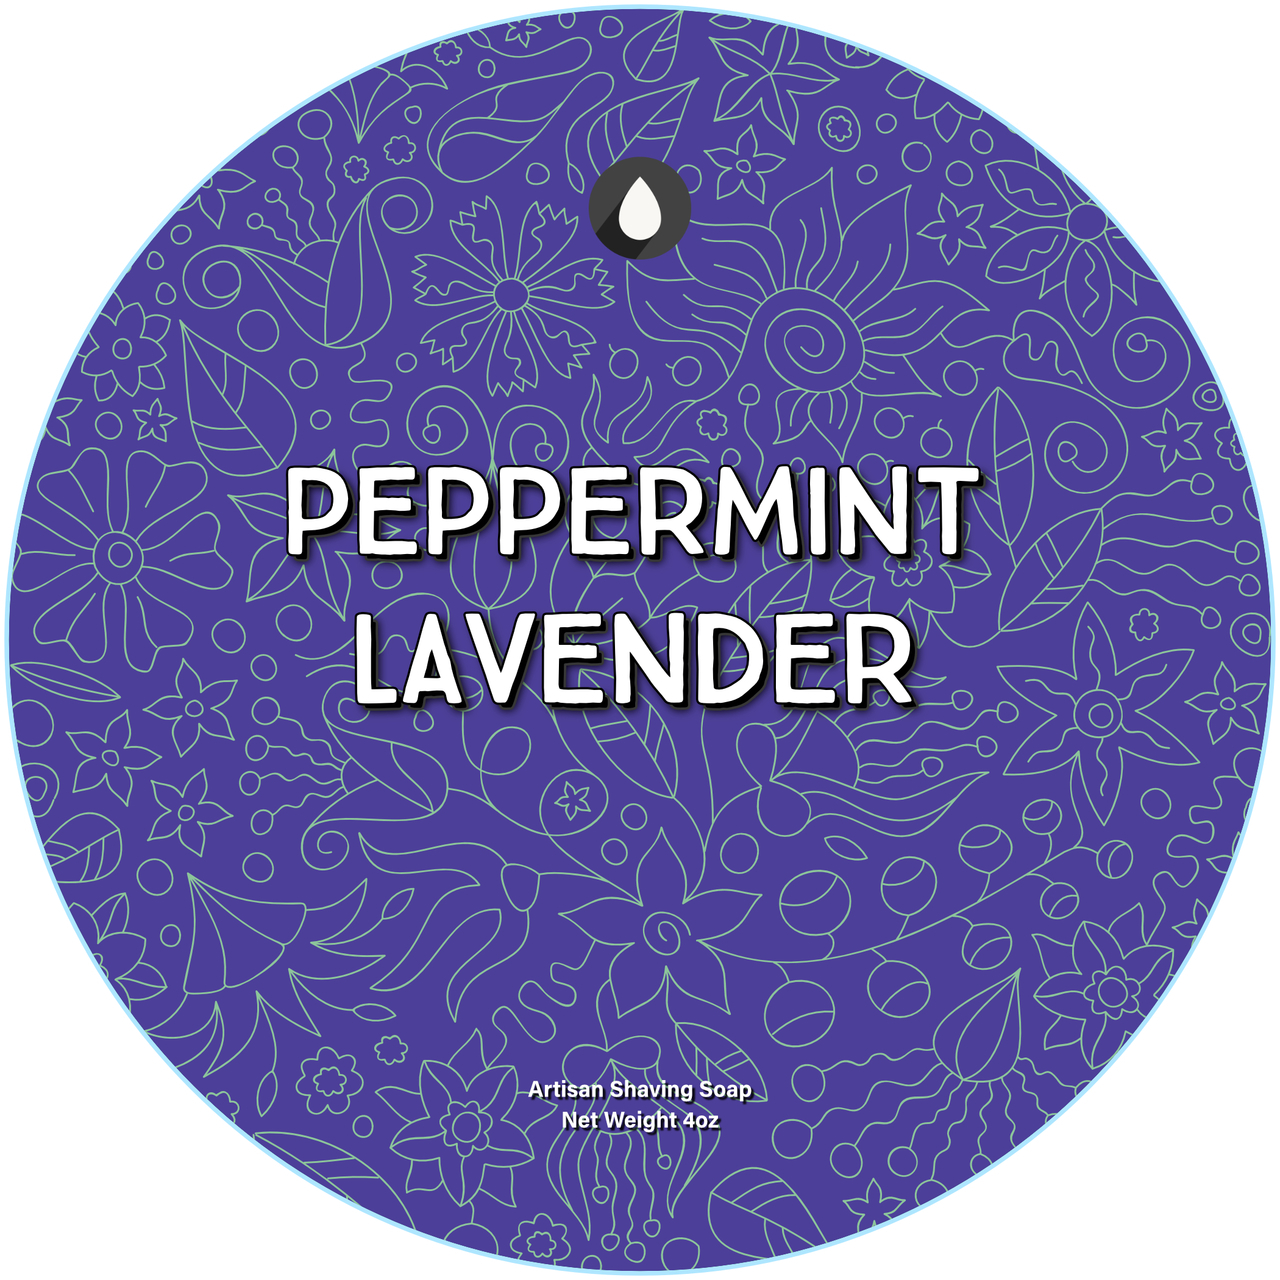 Chicago Grooming Co. (Formerly Oleo Soapworks) - Peppermint Lavender - Soap image